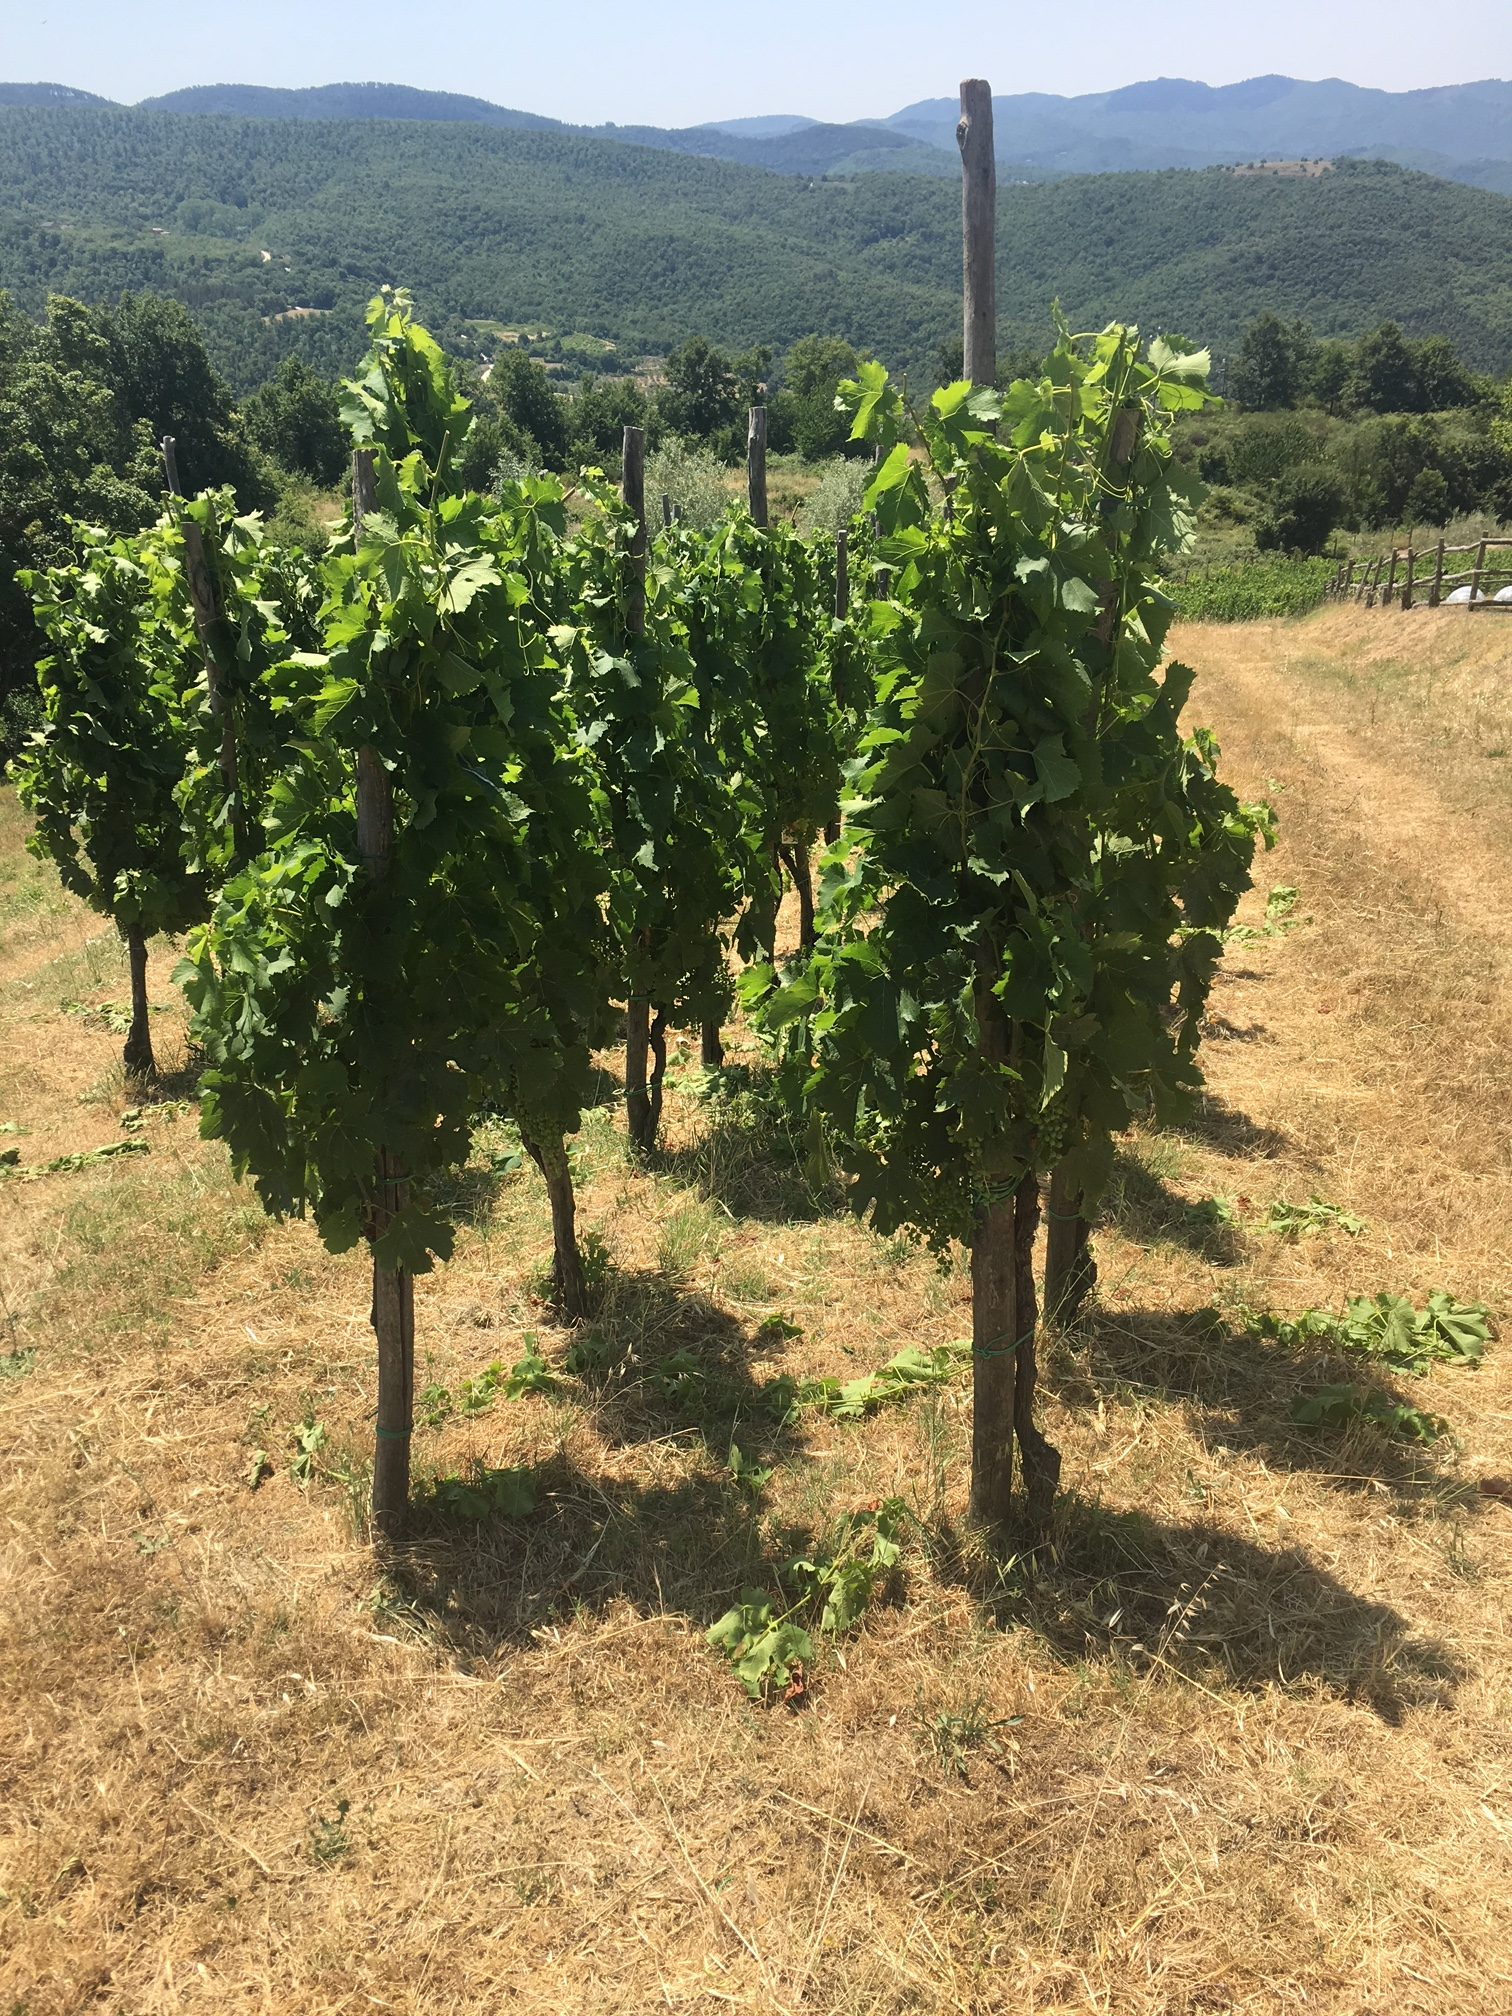 Pomaio grapes and natural wine Italy